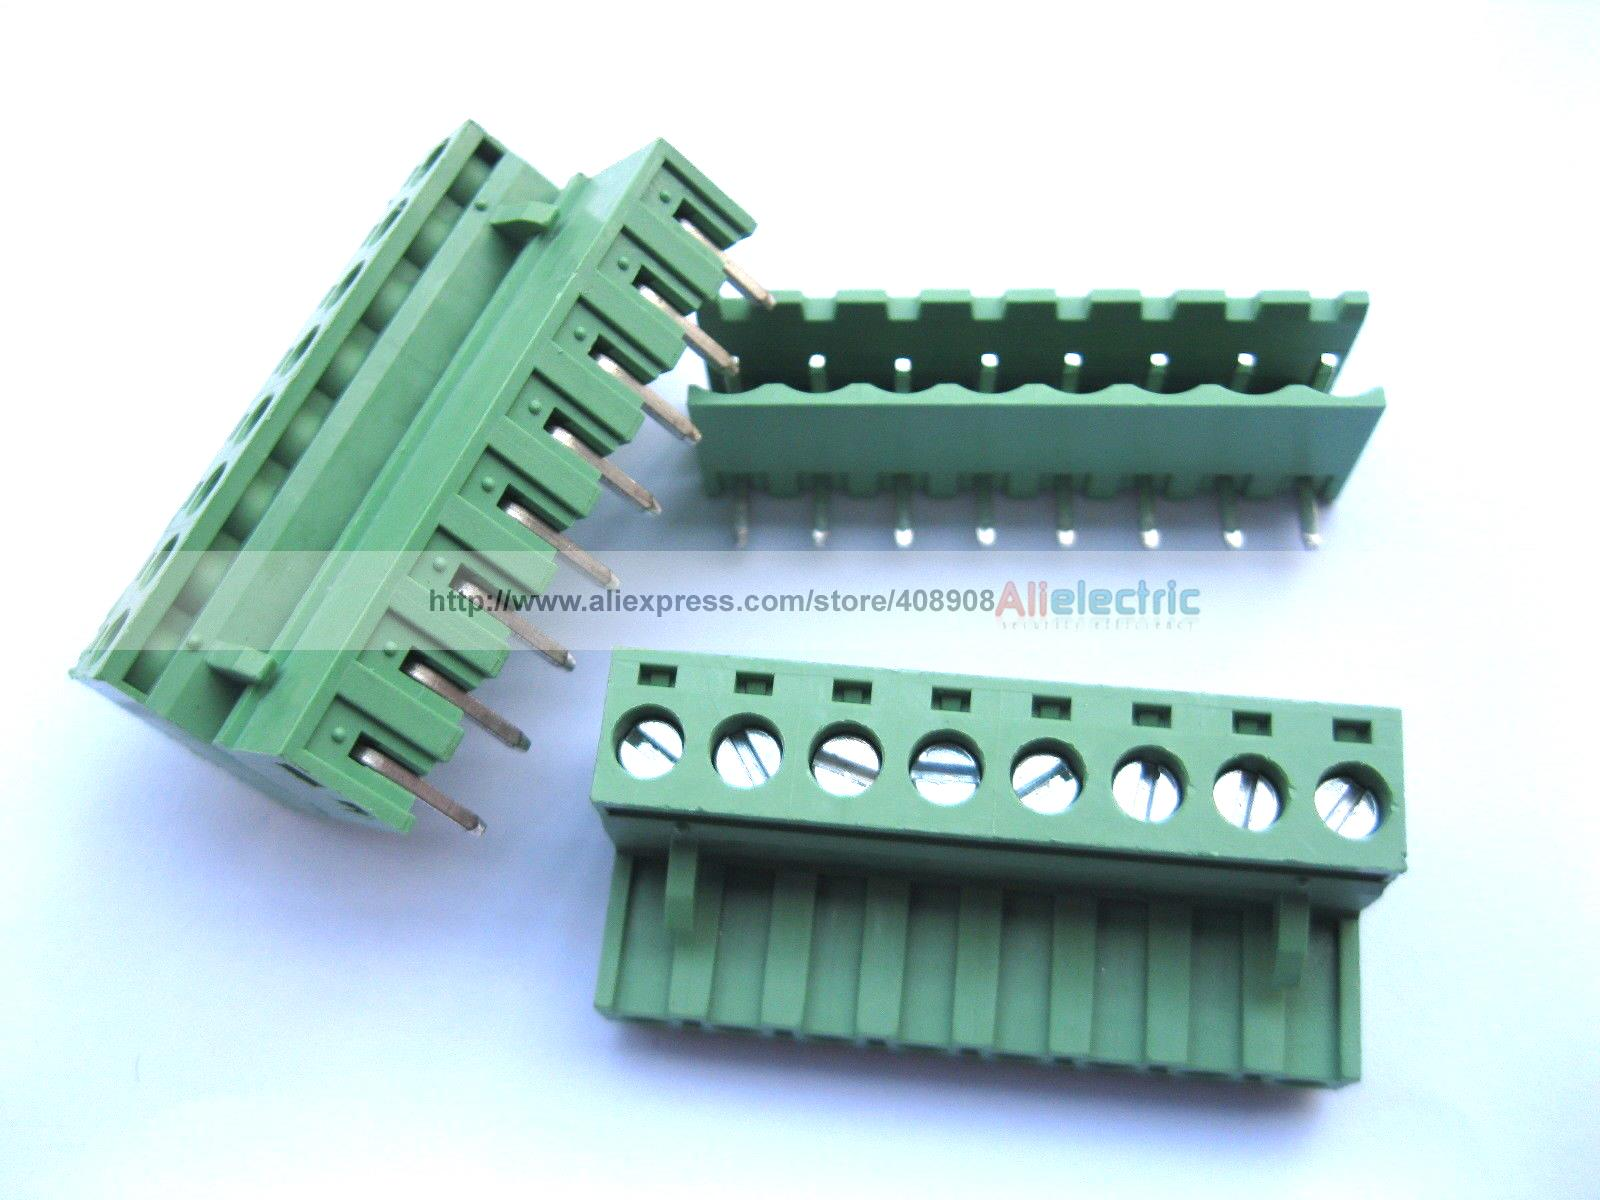 50Pcs 300V KF2EDGK 3.5mm Pitch 3-Pin PCB Screw Terminal Block Connector